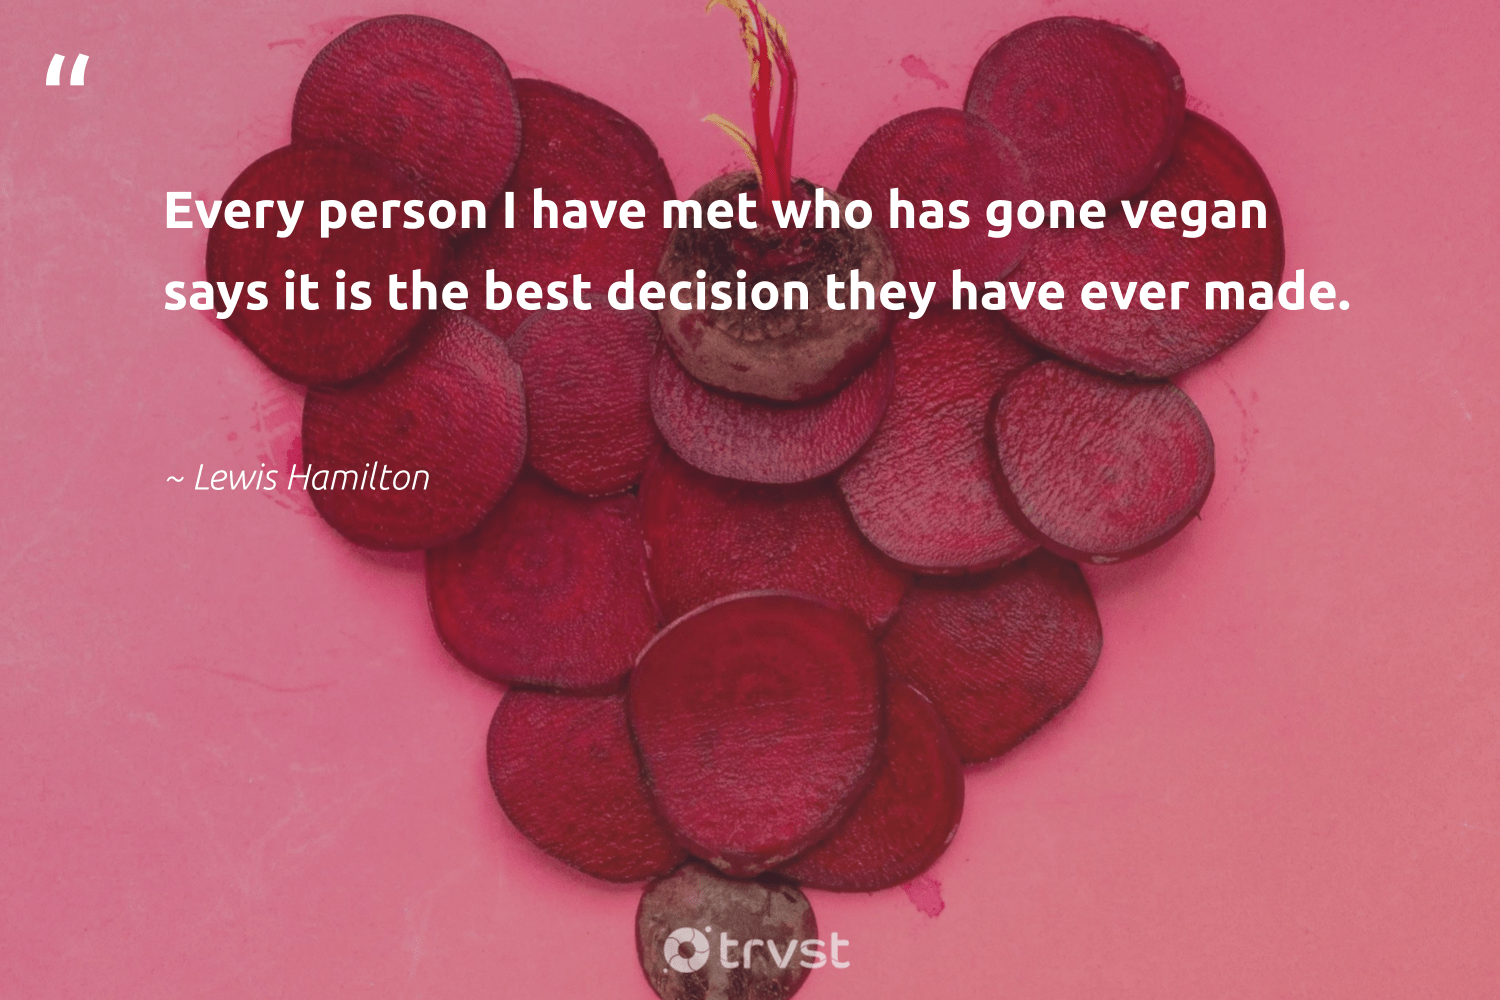 """Every person I have met who has gone vegan says it is the best decision they have ever made.""  - Lewis Hamilton #trvst #quotes #vegan #veganlife #sustainable #greenliving #dogood #vegetarian #sustainability #fashion #dotherightthing #govegan"